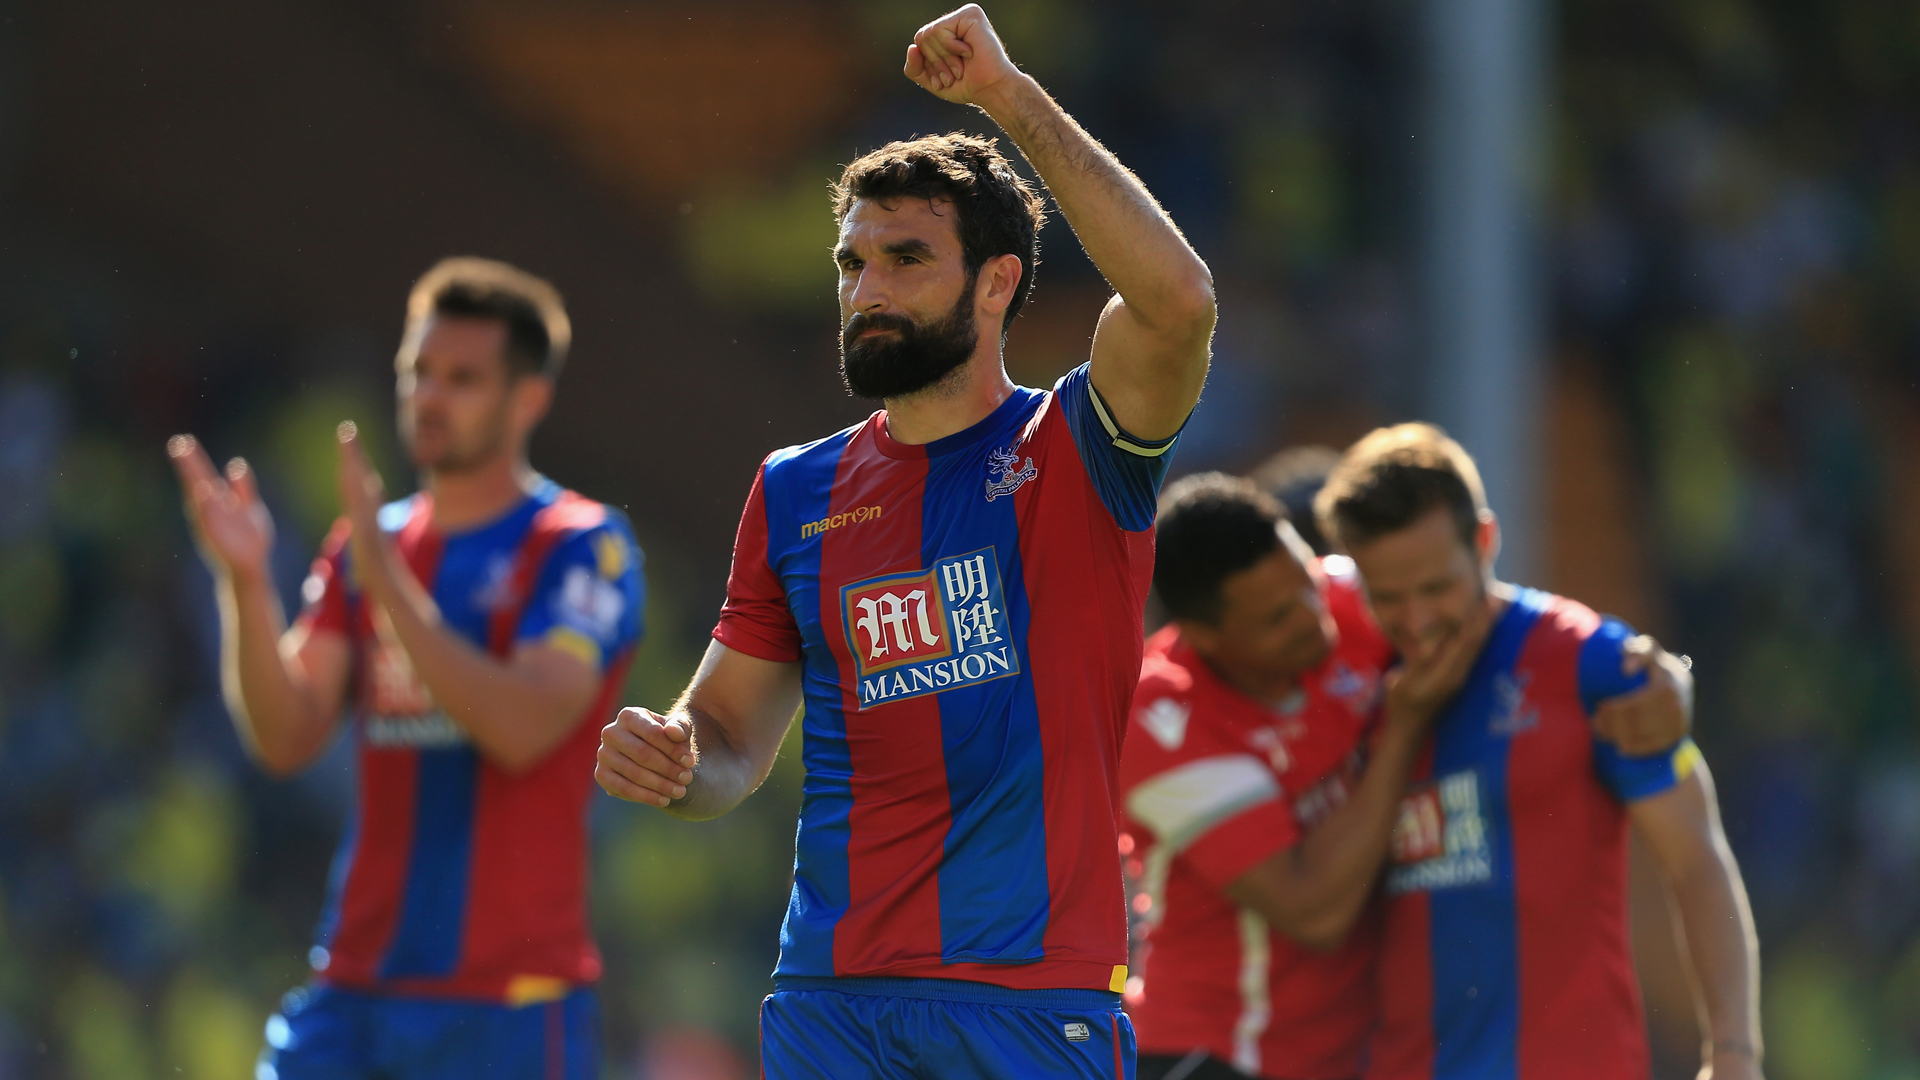 MileJedinak - Cropped